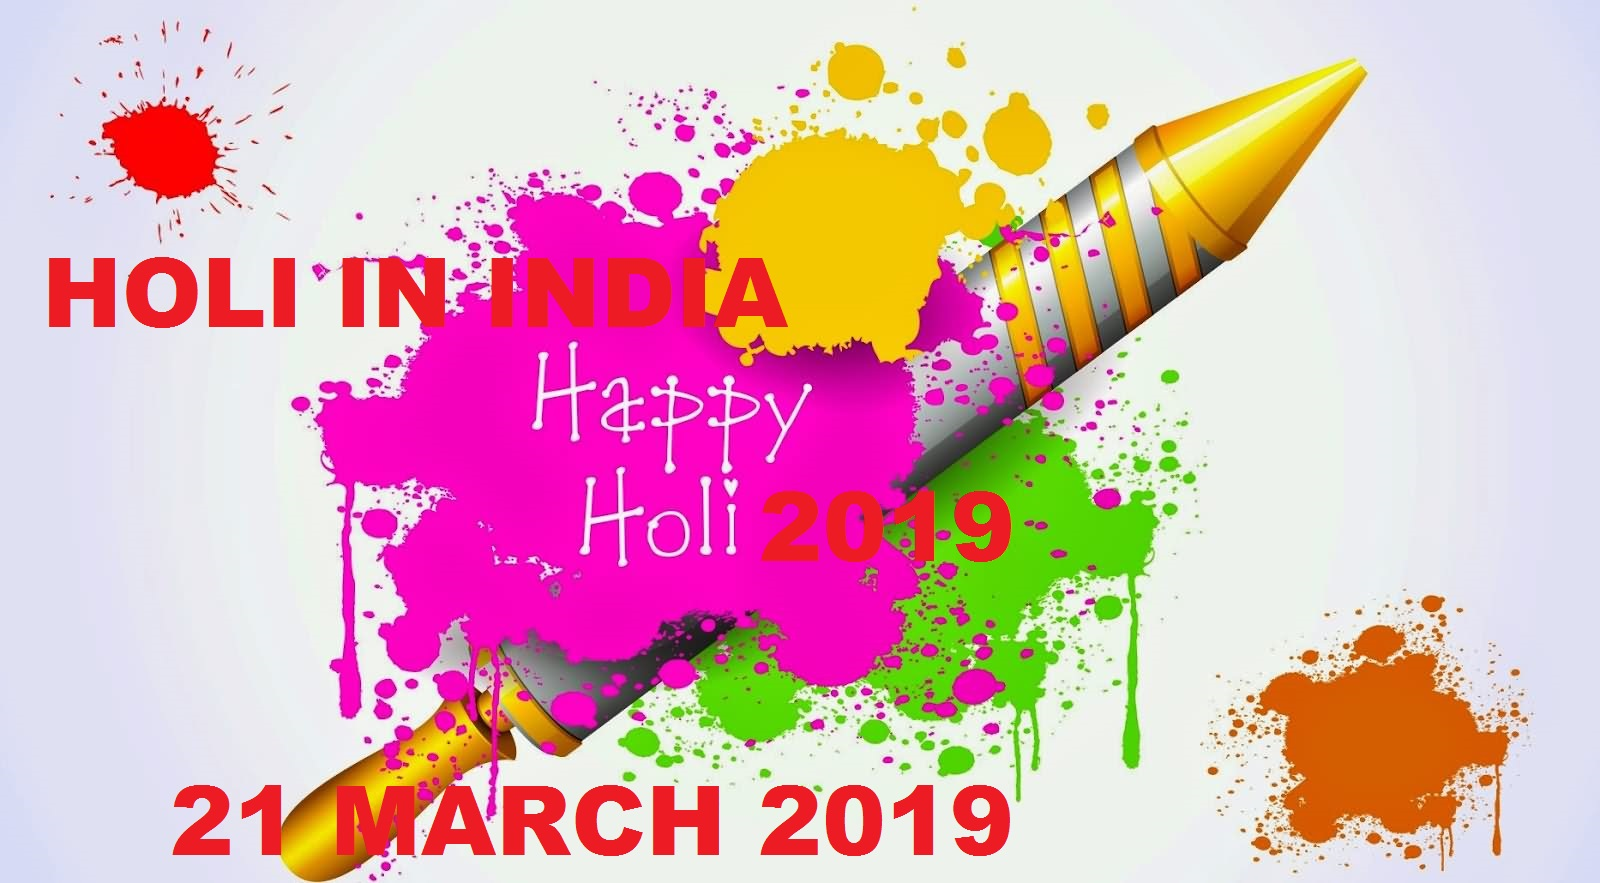 Happy Holi March 2019 Wishes QUOTES English and Hindi 5